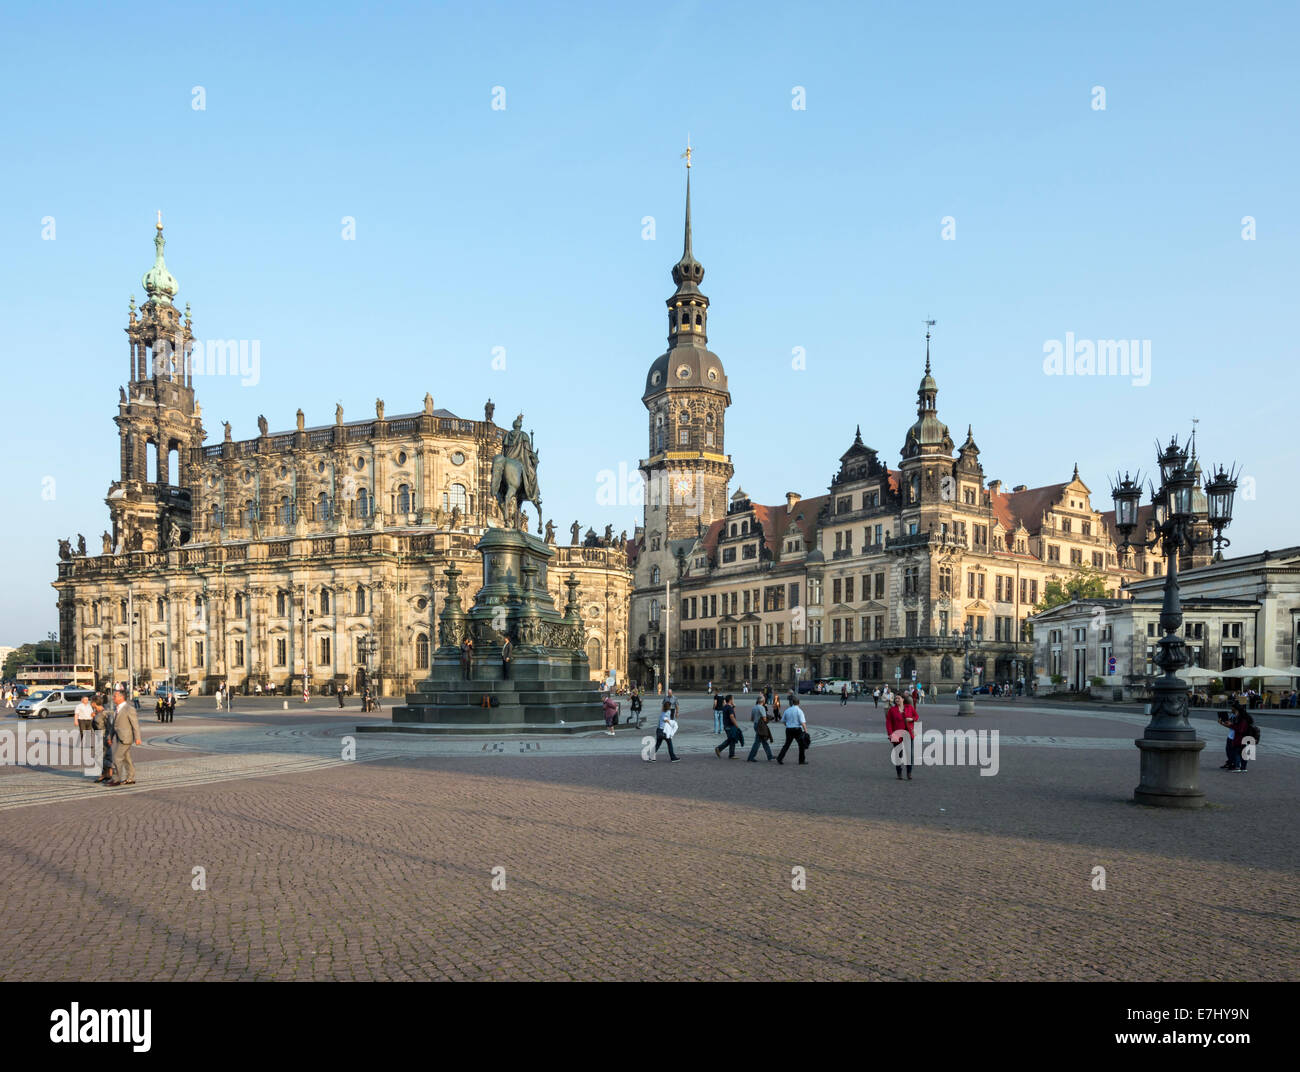 DRESDEN, GERMANY - SEPTEMBER 4: Tourists at the Theaterplatz in Dresden, Germany on September 4, 2014. - Stock Image